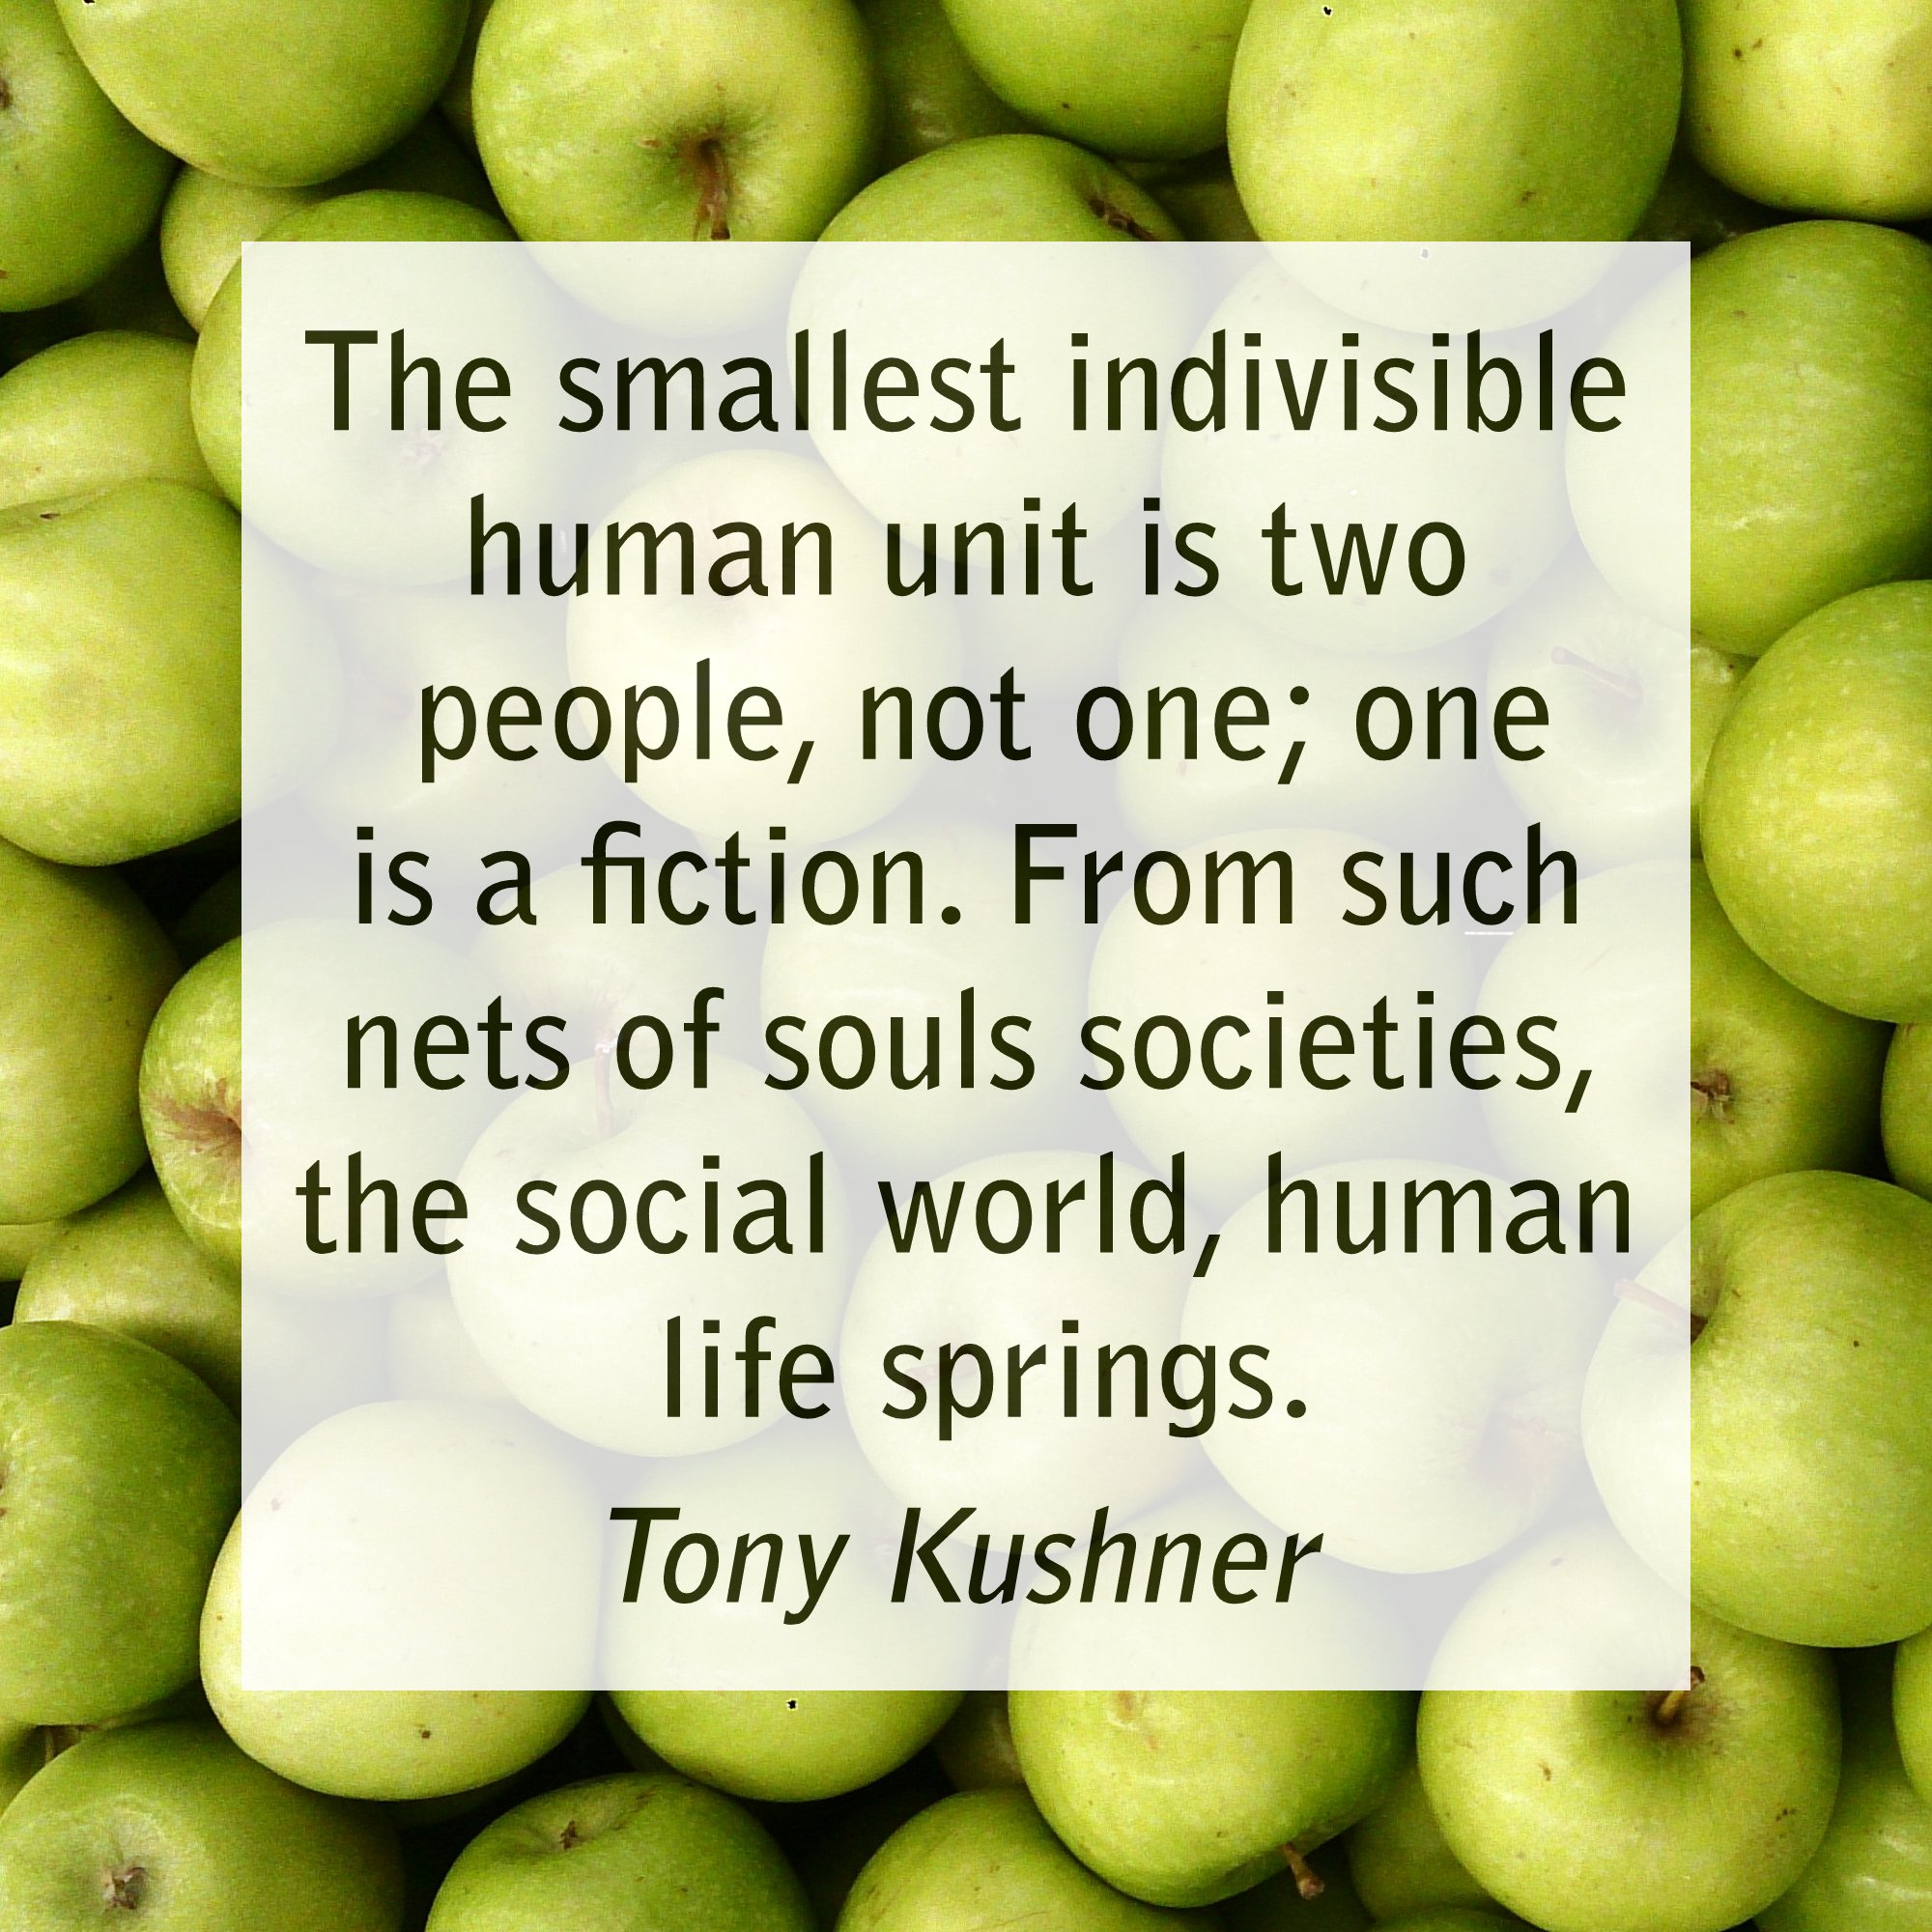 The smallest indivisible human unit is two people, not one; one is a fiction ...